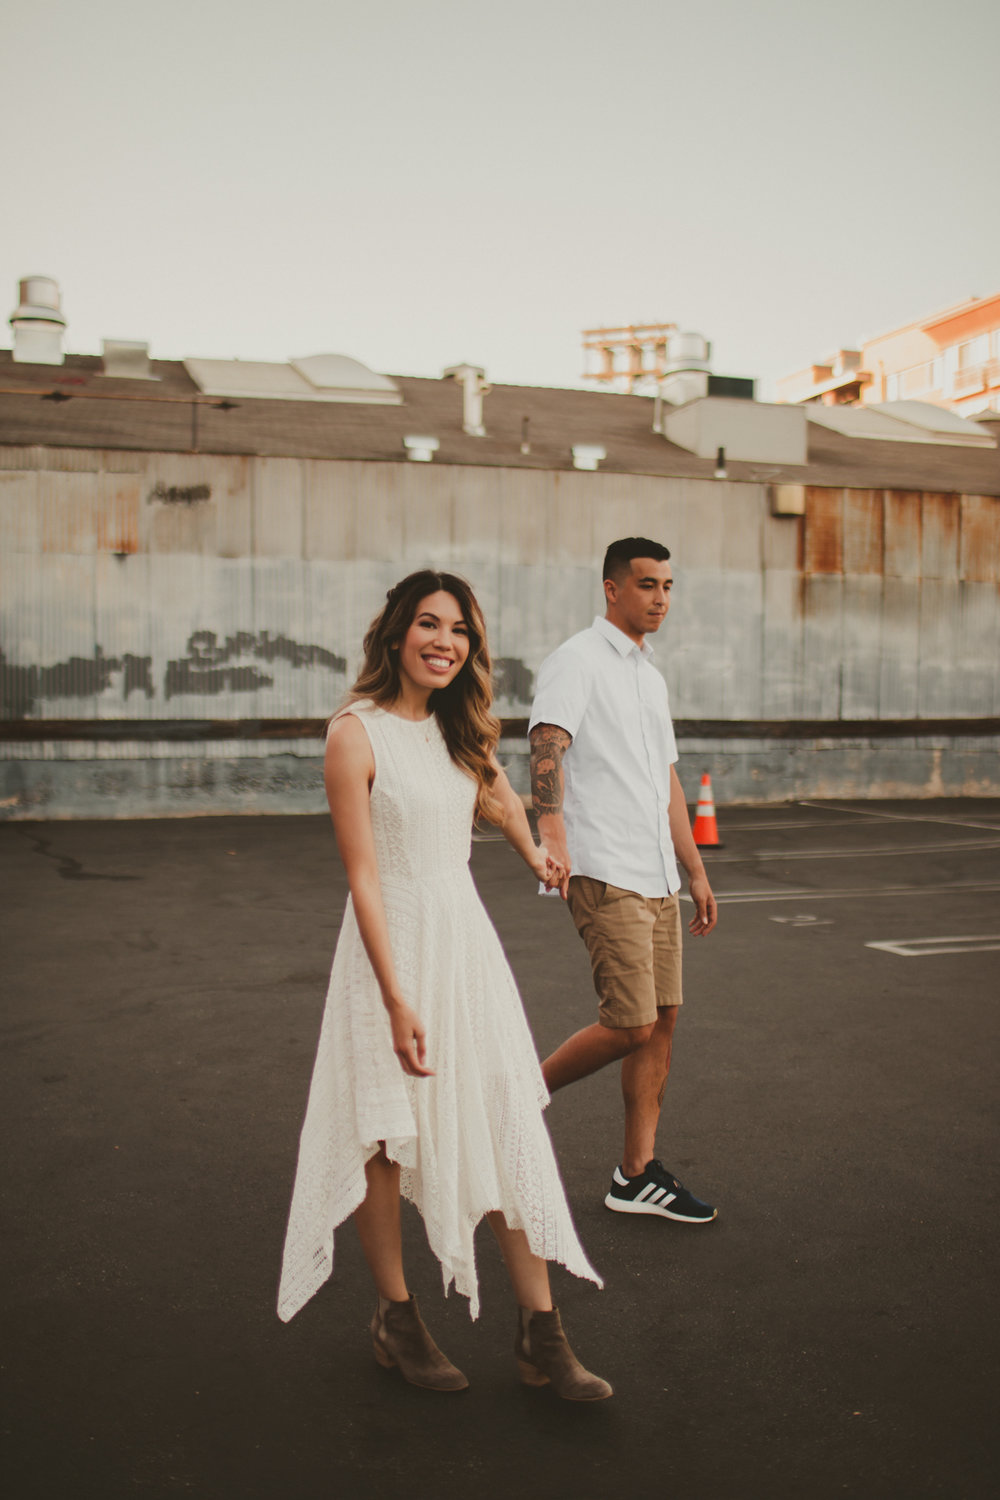 kat-kevin-dtla-arts-district-engagement-kelley-raye-los-angeles-wedding-photographer-45.jpg